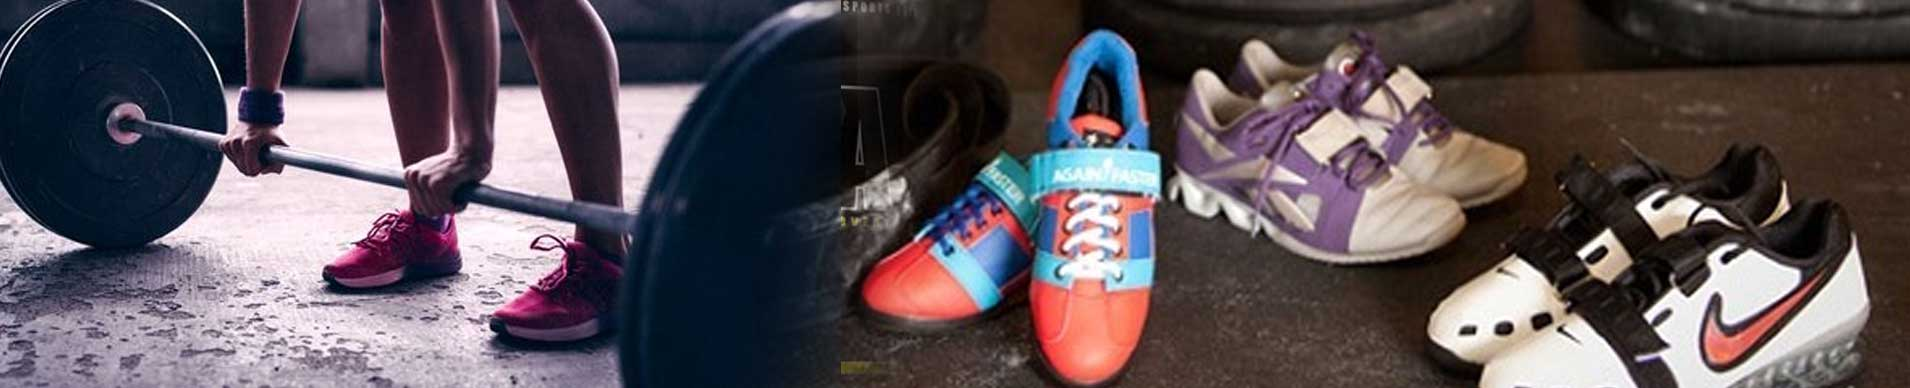 weightlifting shoes for women